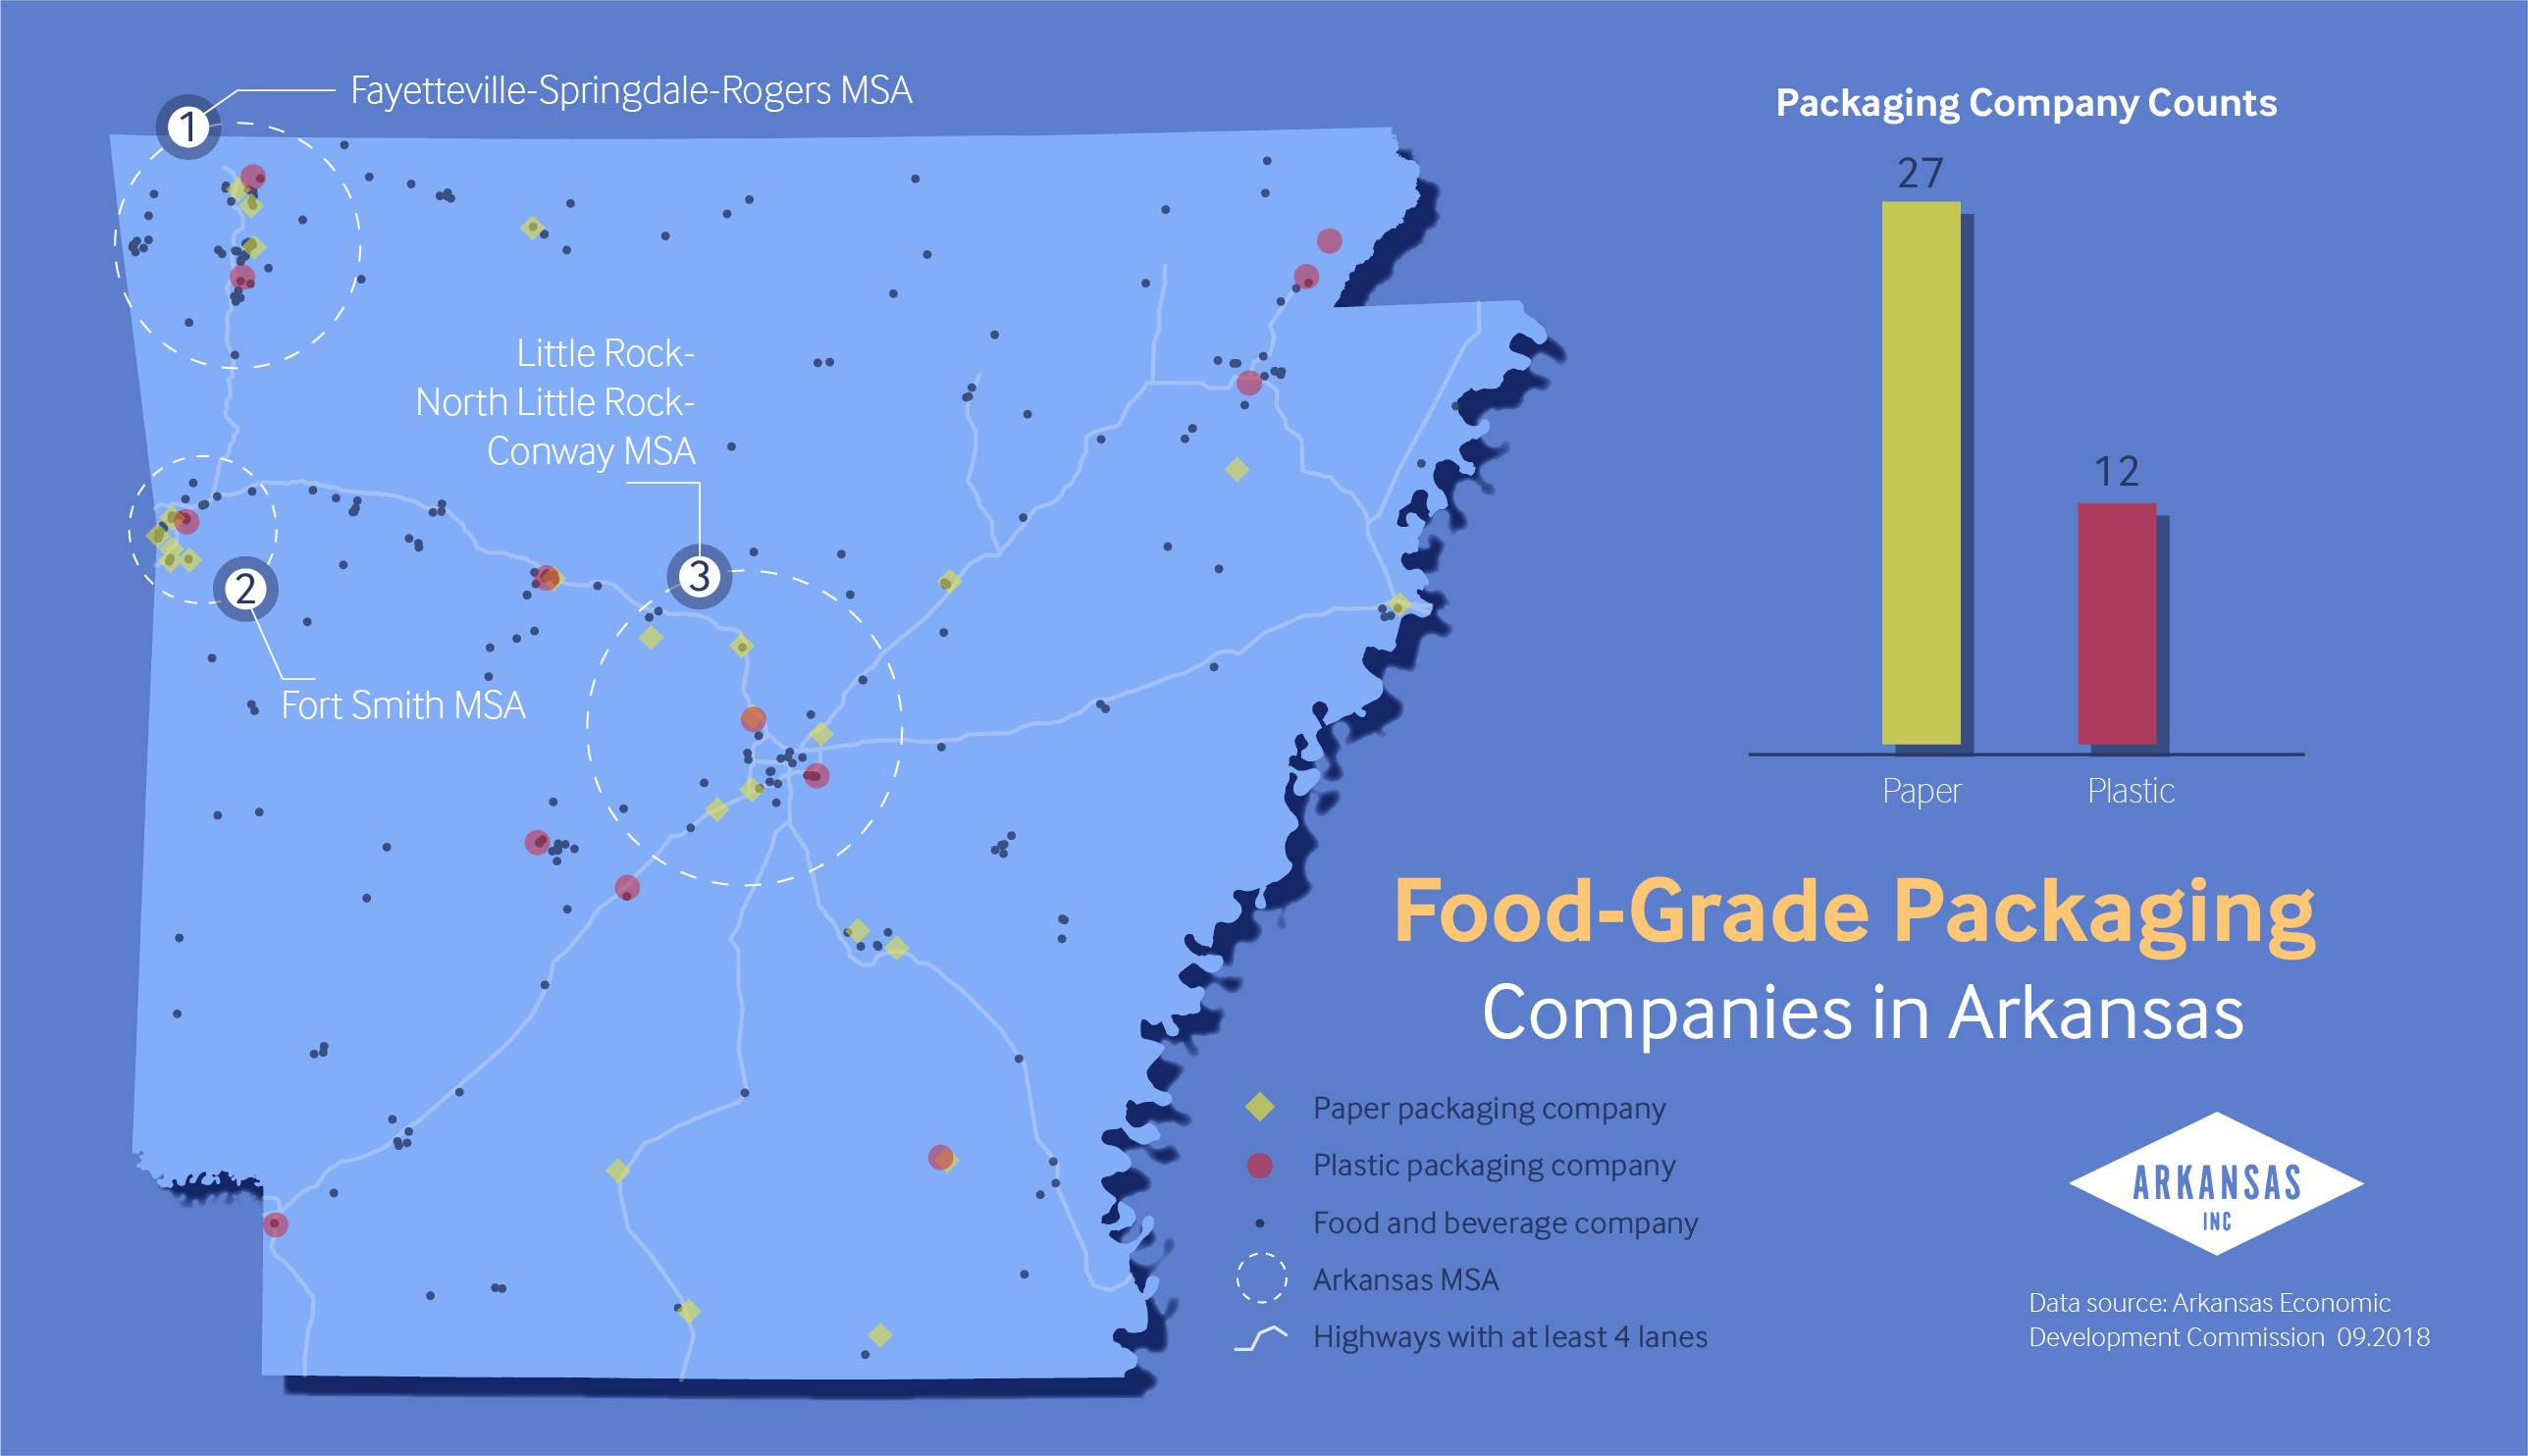 Arkansas food and beverage packaging companies